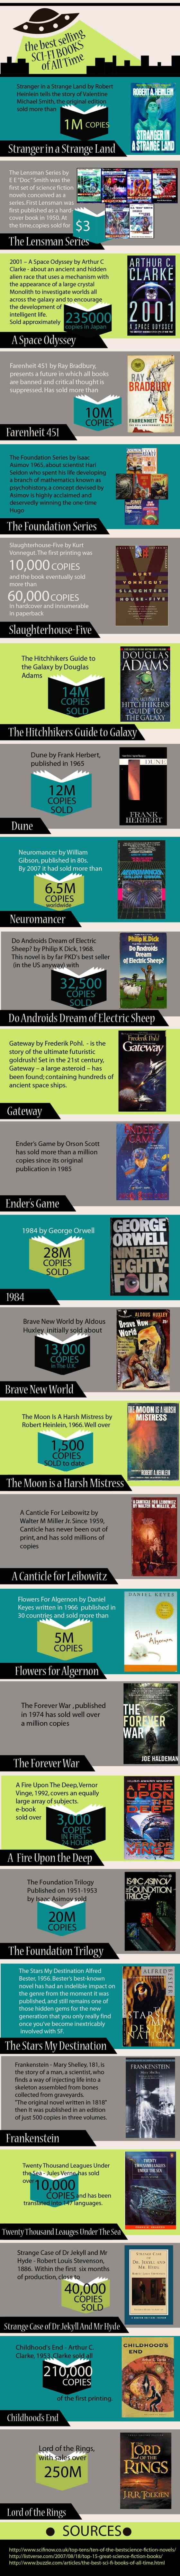 The Best Selling SF Books of All Time (Infographic) Infographic